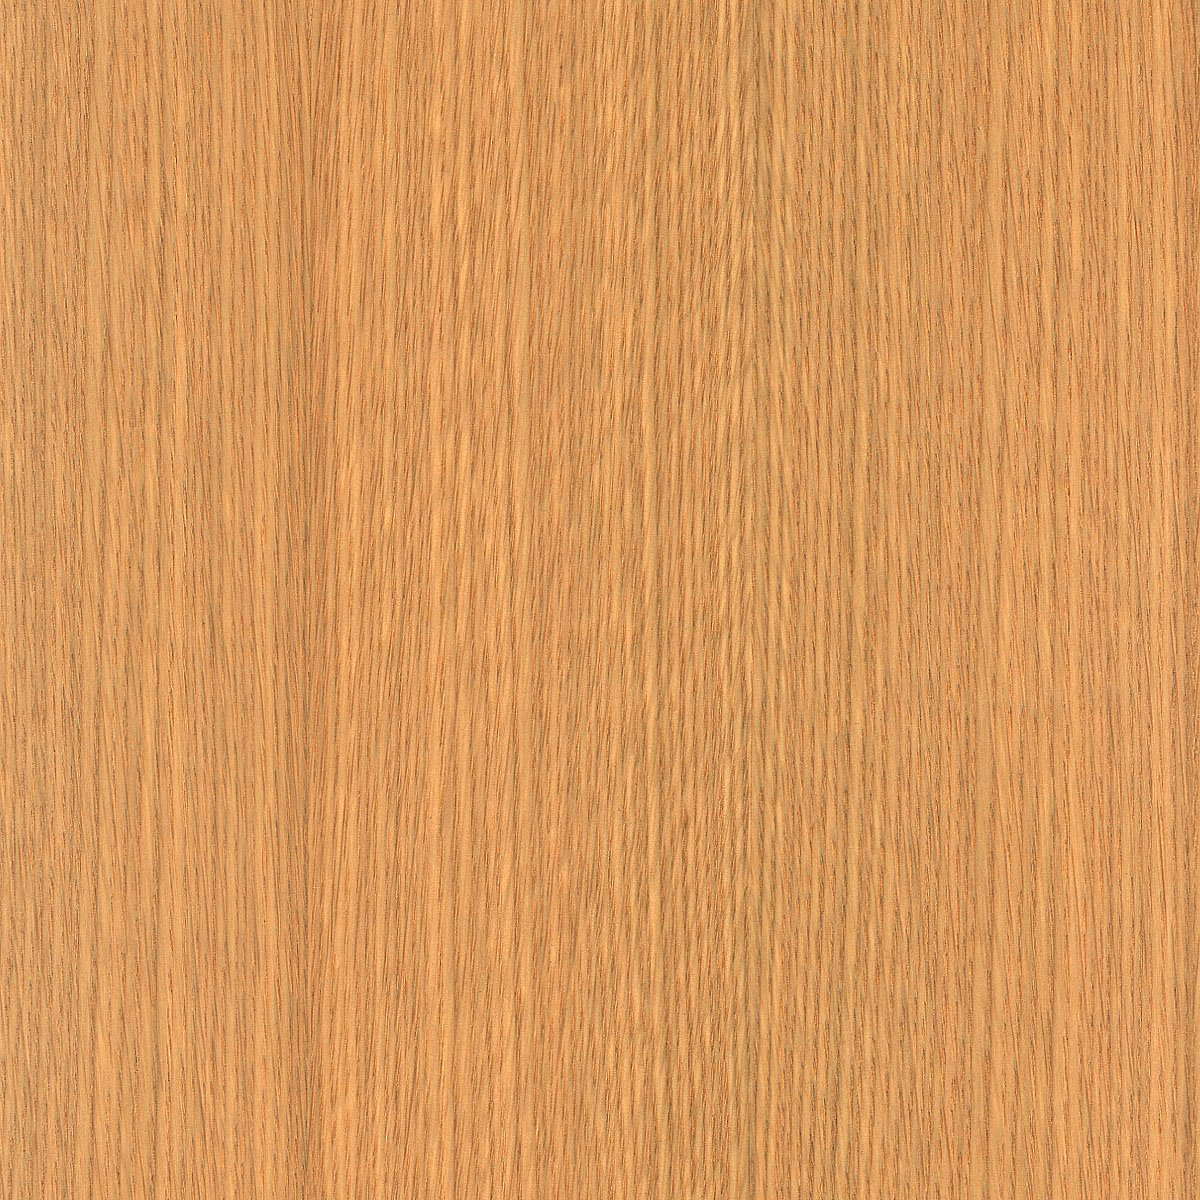 White Oak Wood Veneer Rift Cut 2x8 10 mil Sheet